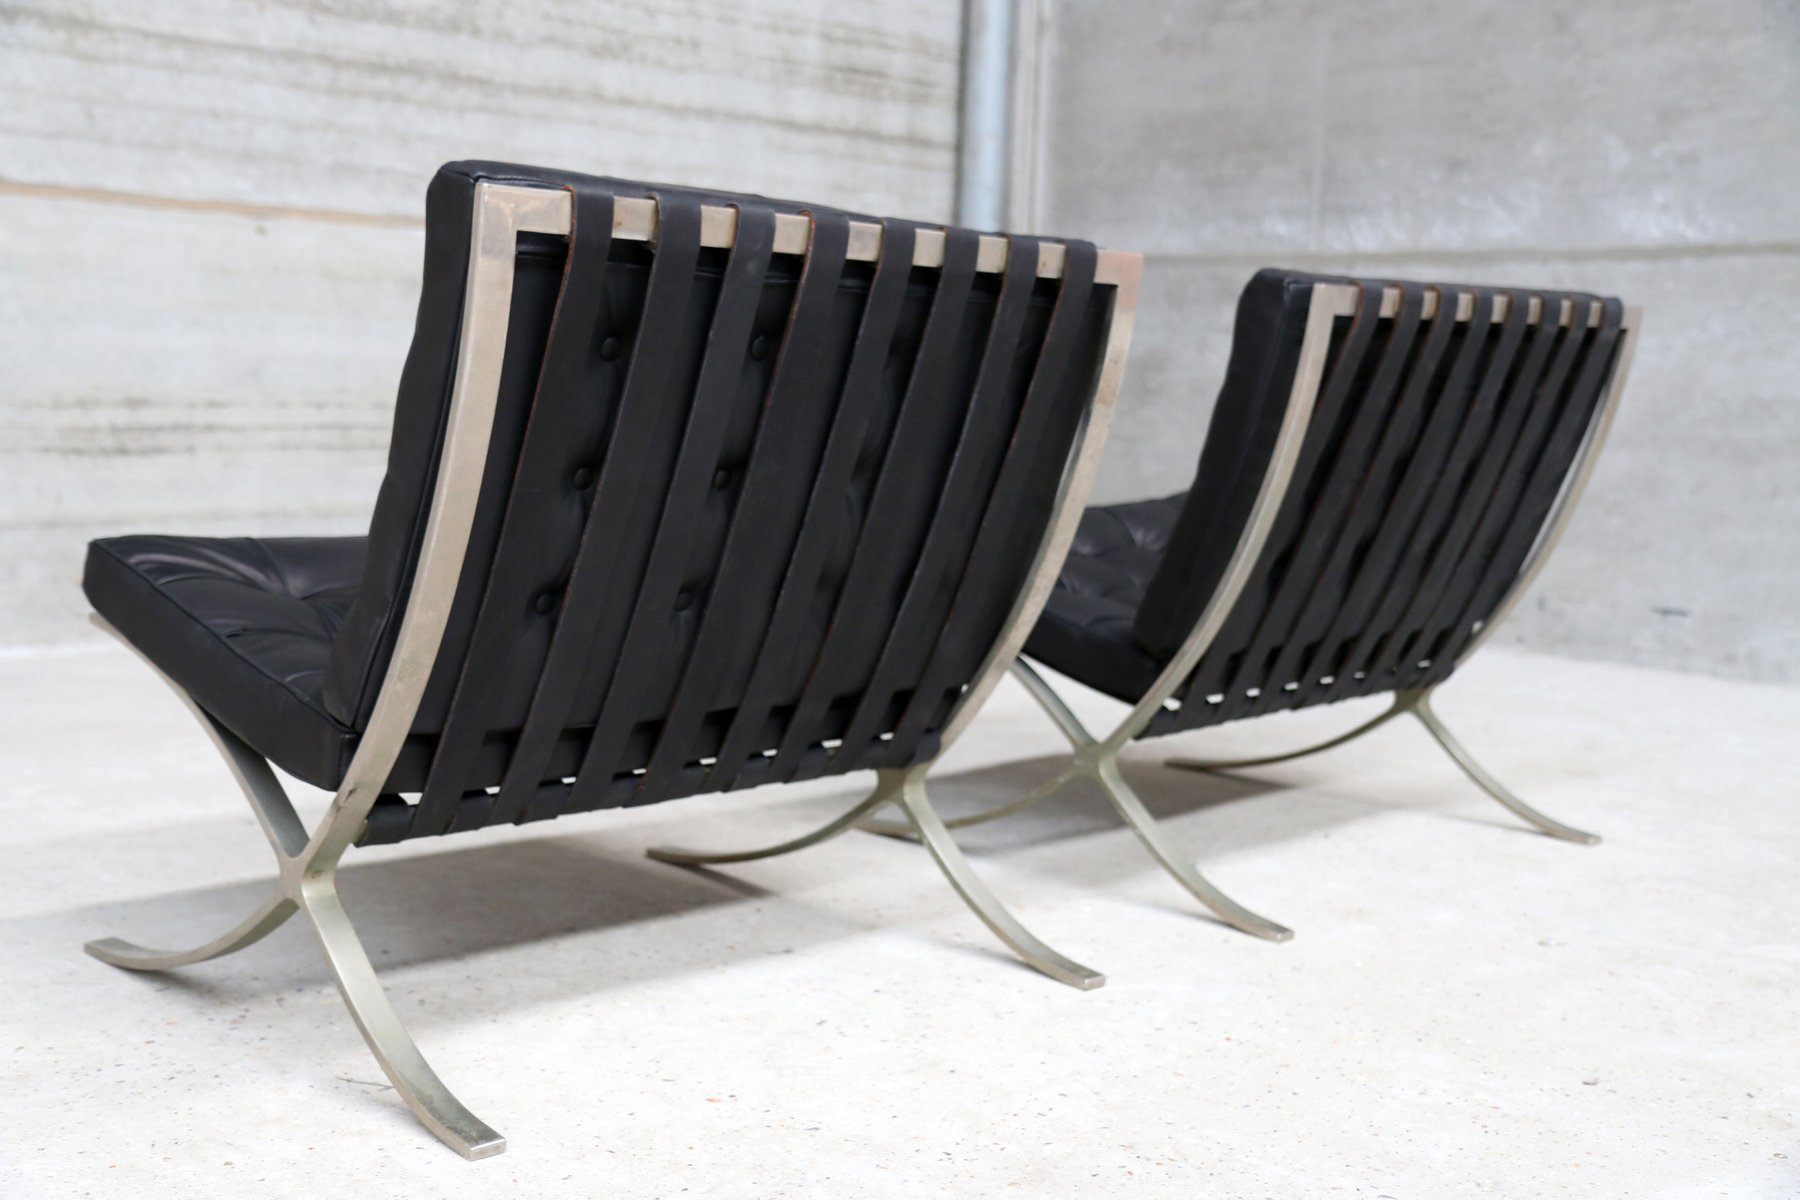 Wood Barcelona Chair Vintage Barcelona Chairs By Ludwig Mies Van Der Rohe For